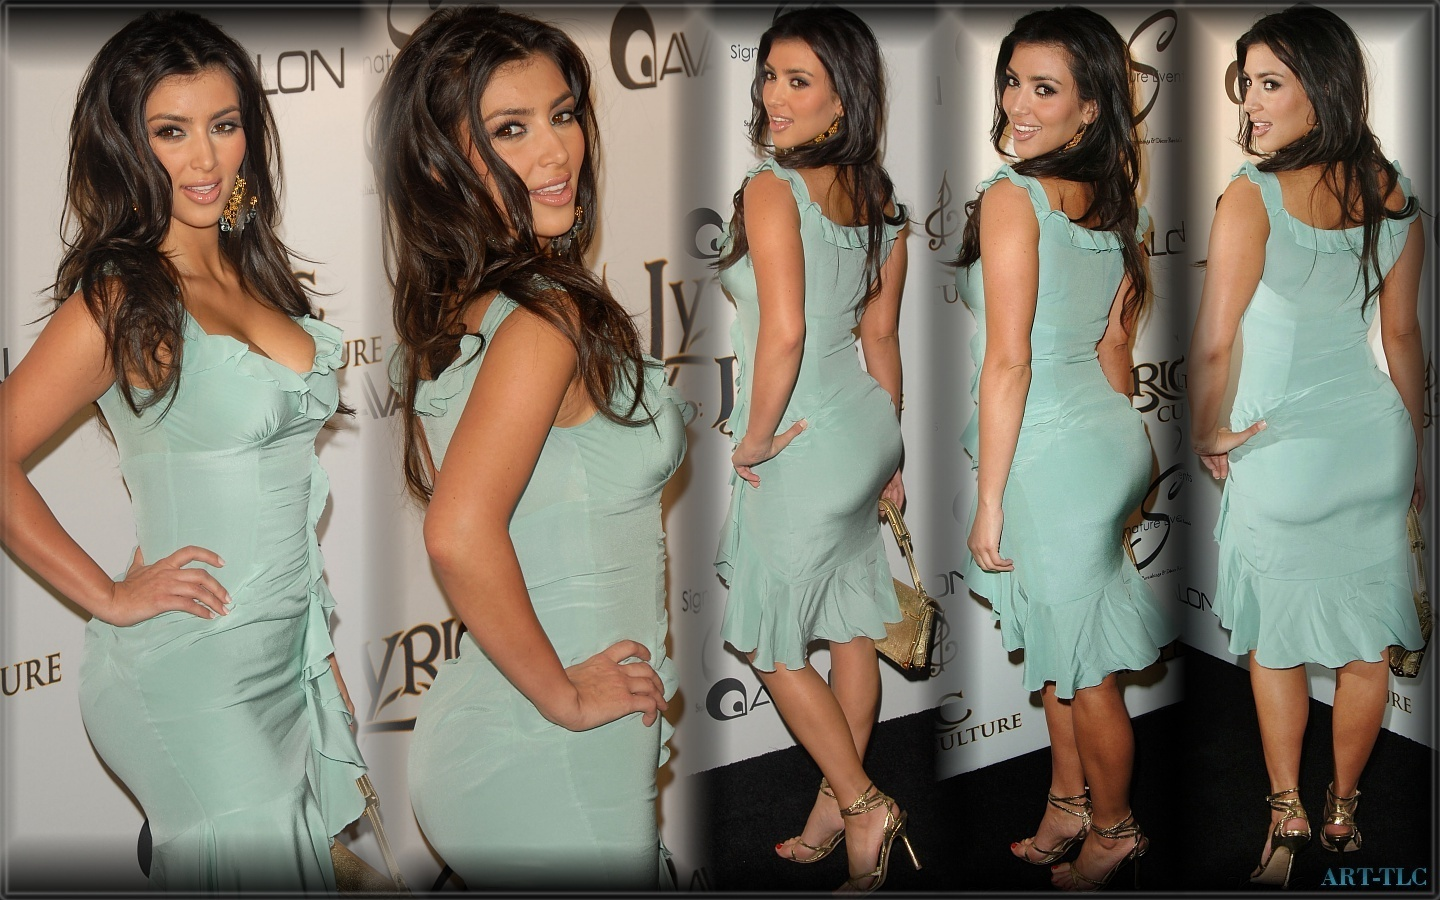 Kim Kardashian images Kim wallpapers wallpaper photos 2014639 1440x900